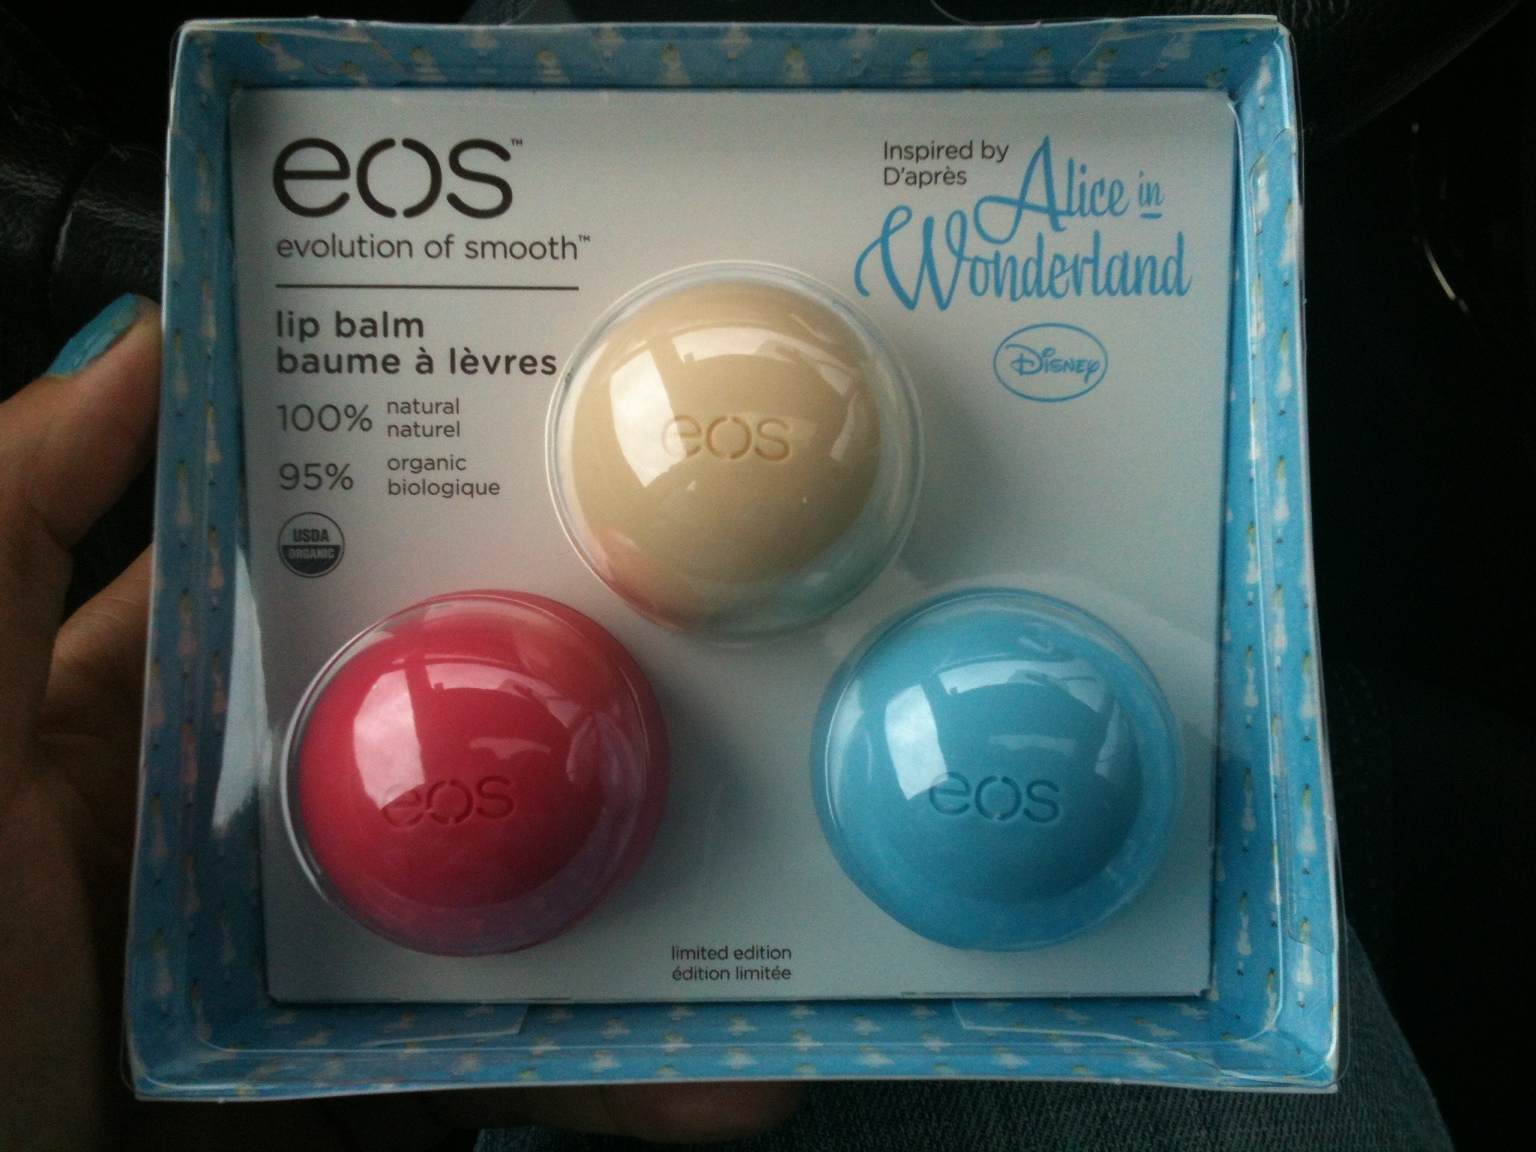 eos lip balms in alice in wonderland theme with three flavors ...